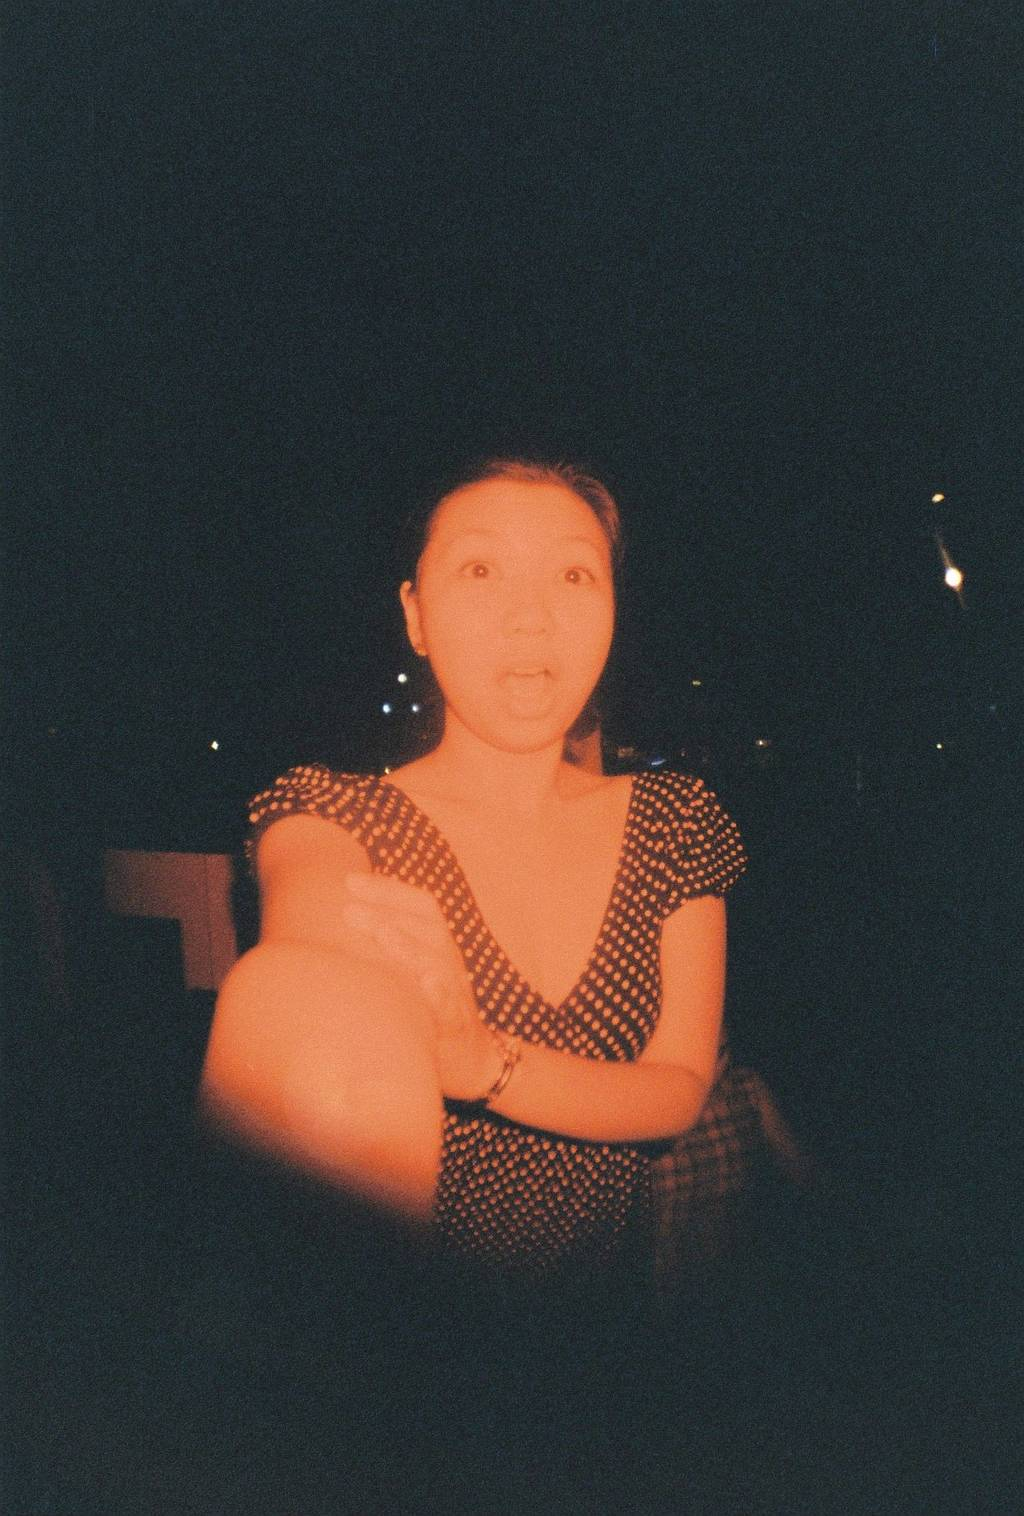 For Better Photos in 2011: Learning from my First Year in Lomography